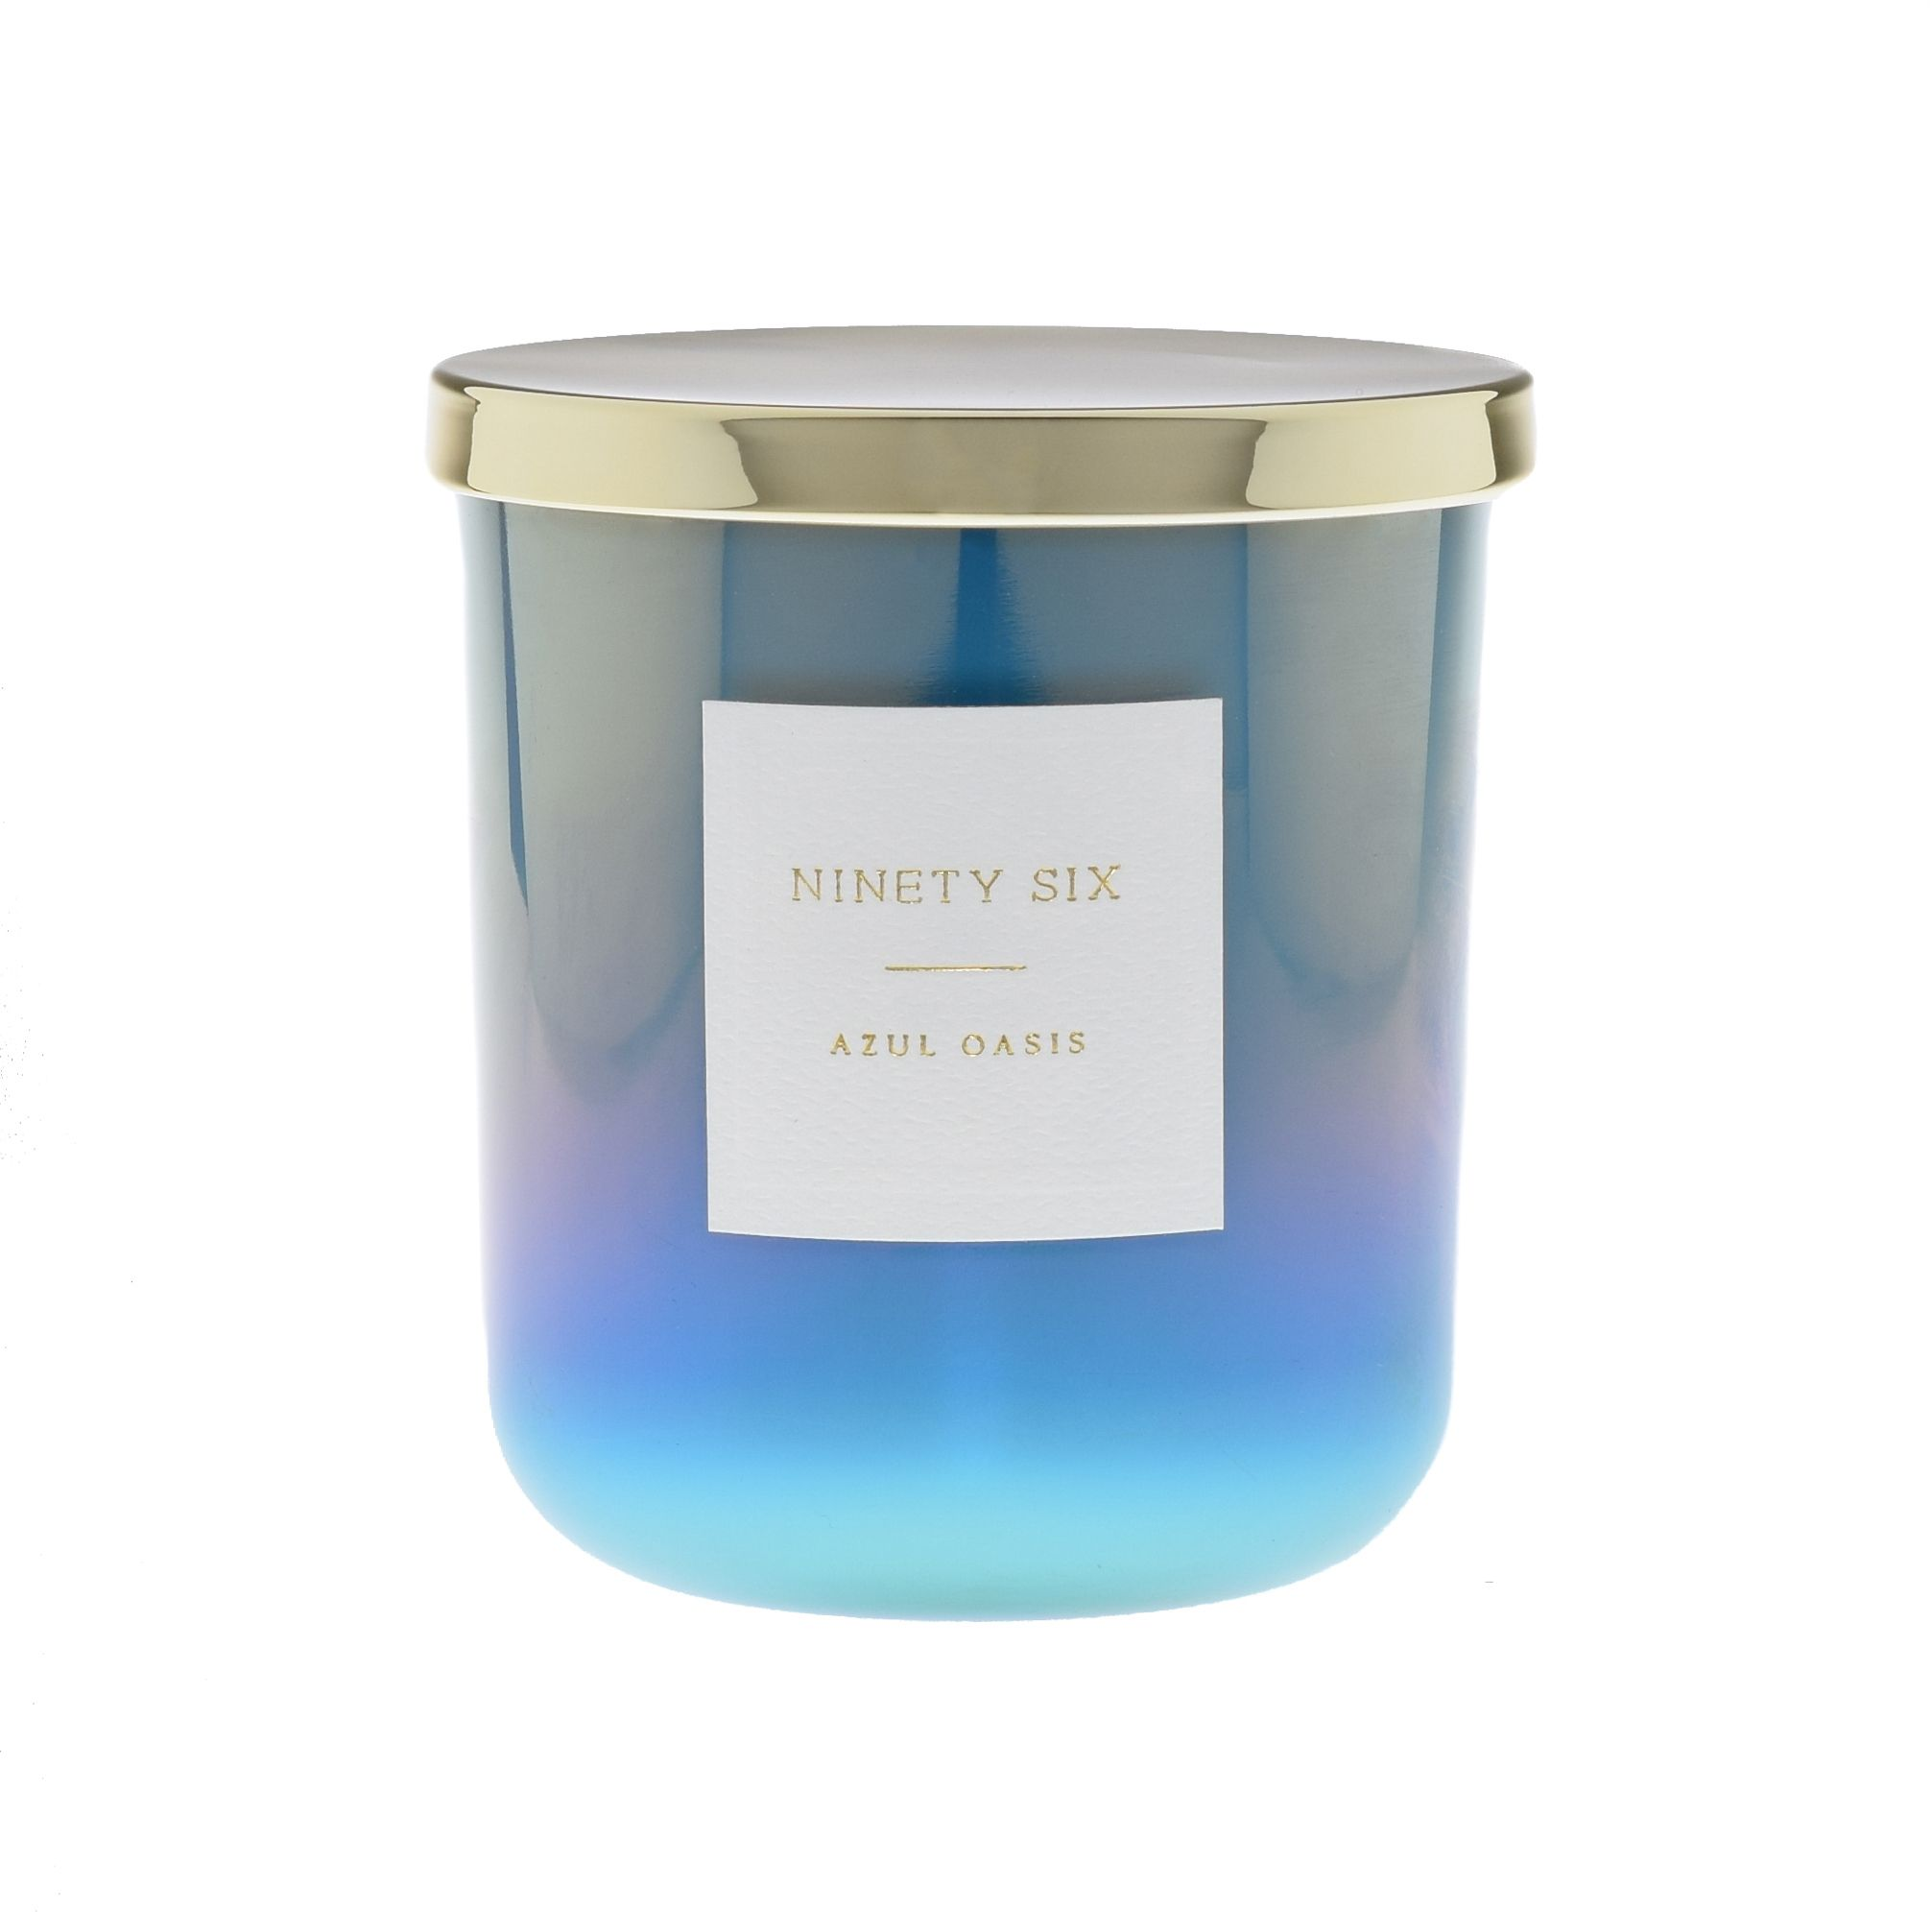 Azul Oasis Ninety Six Dw Home Scented Candles Irr7001 With